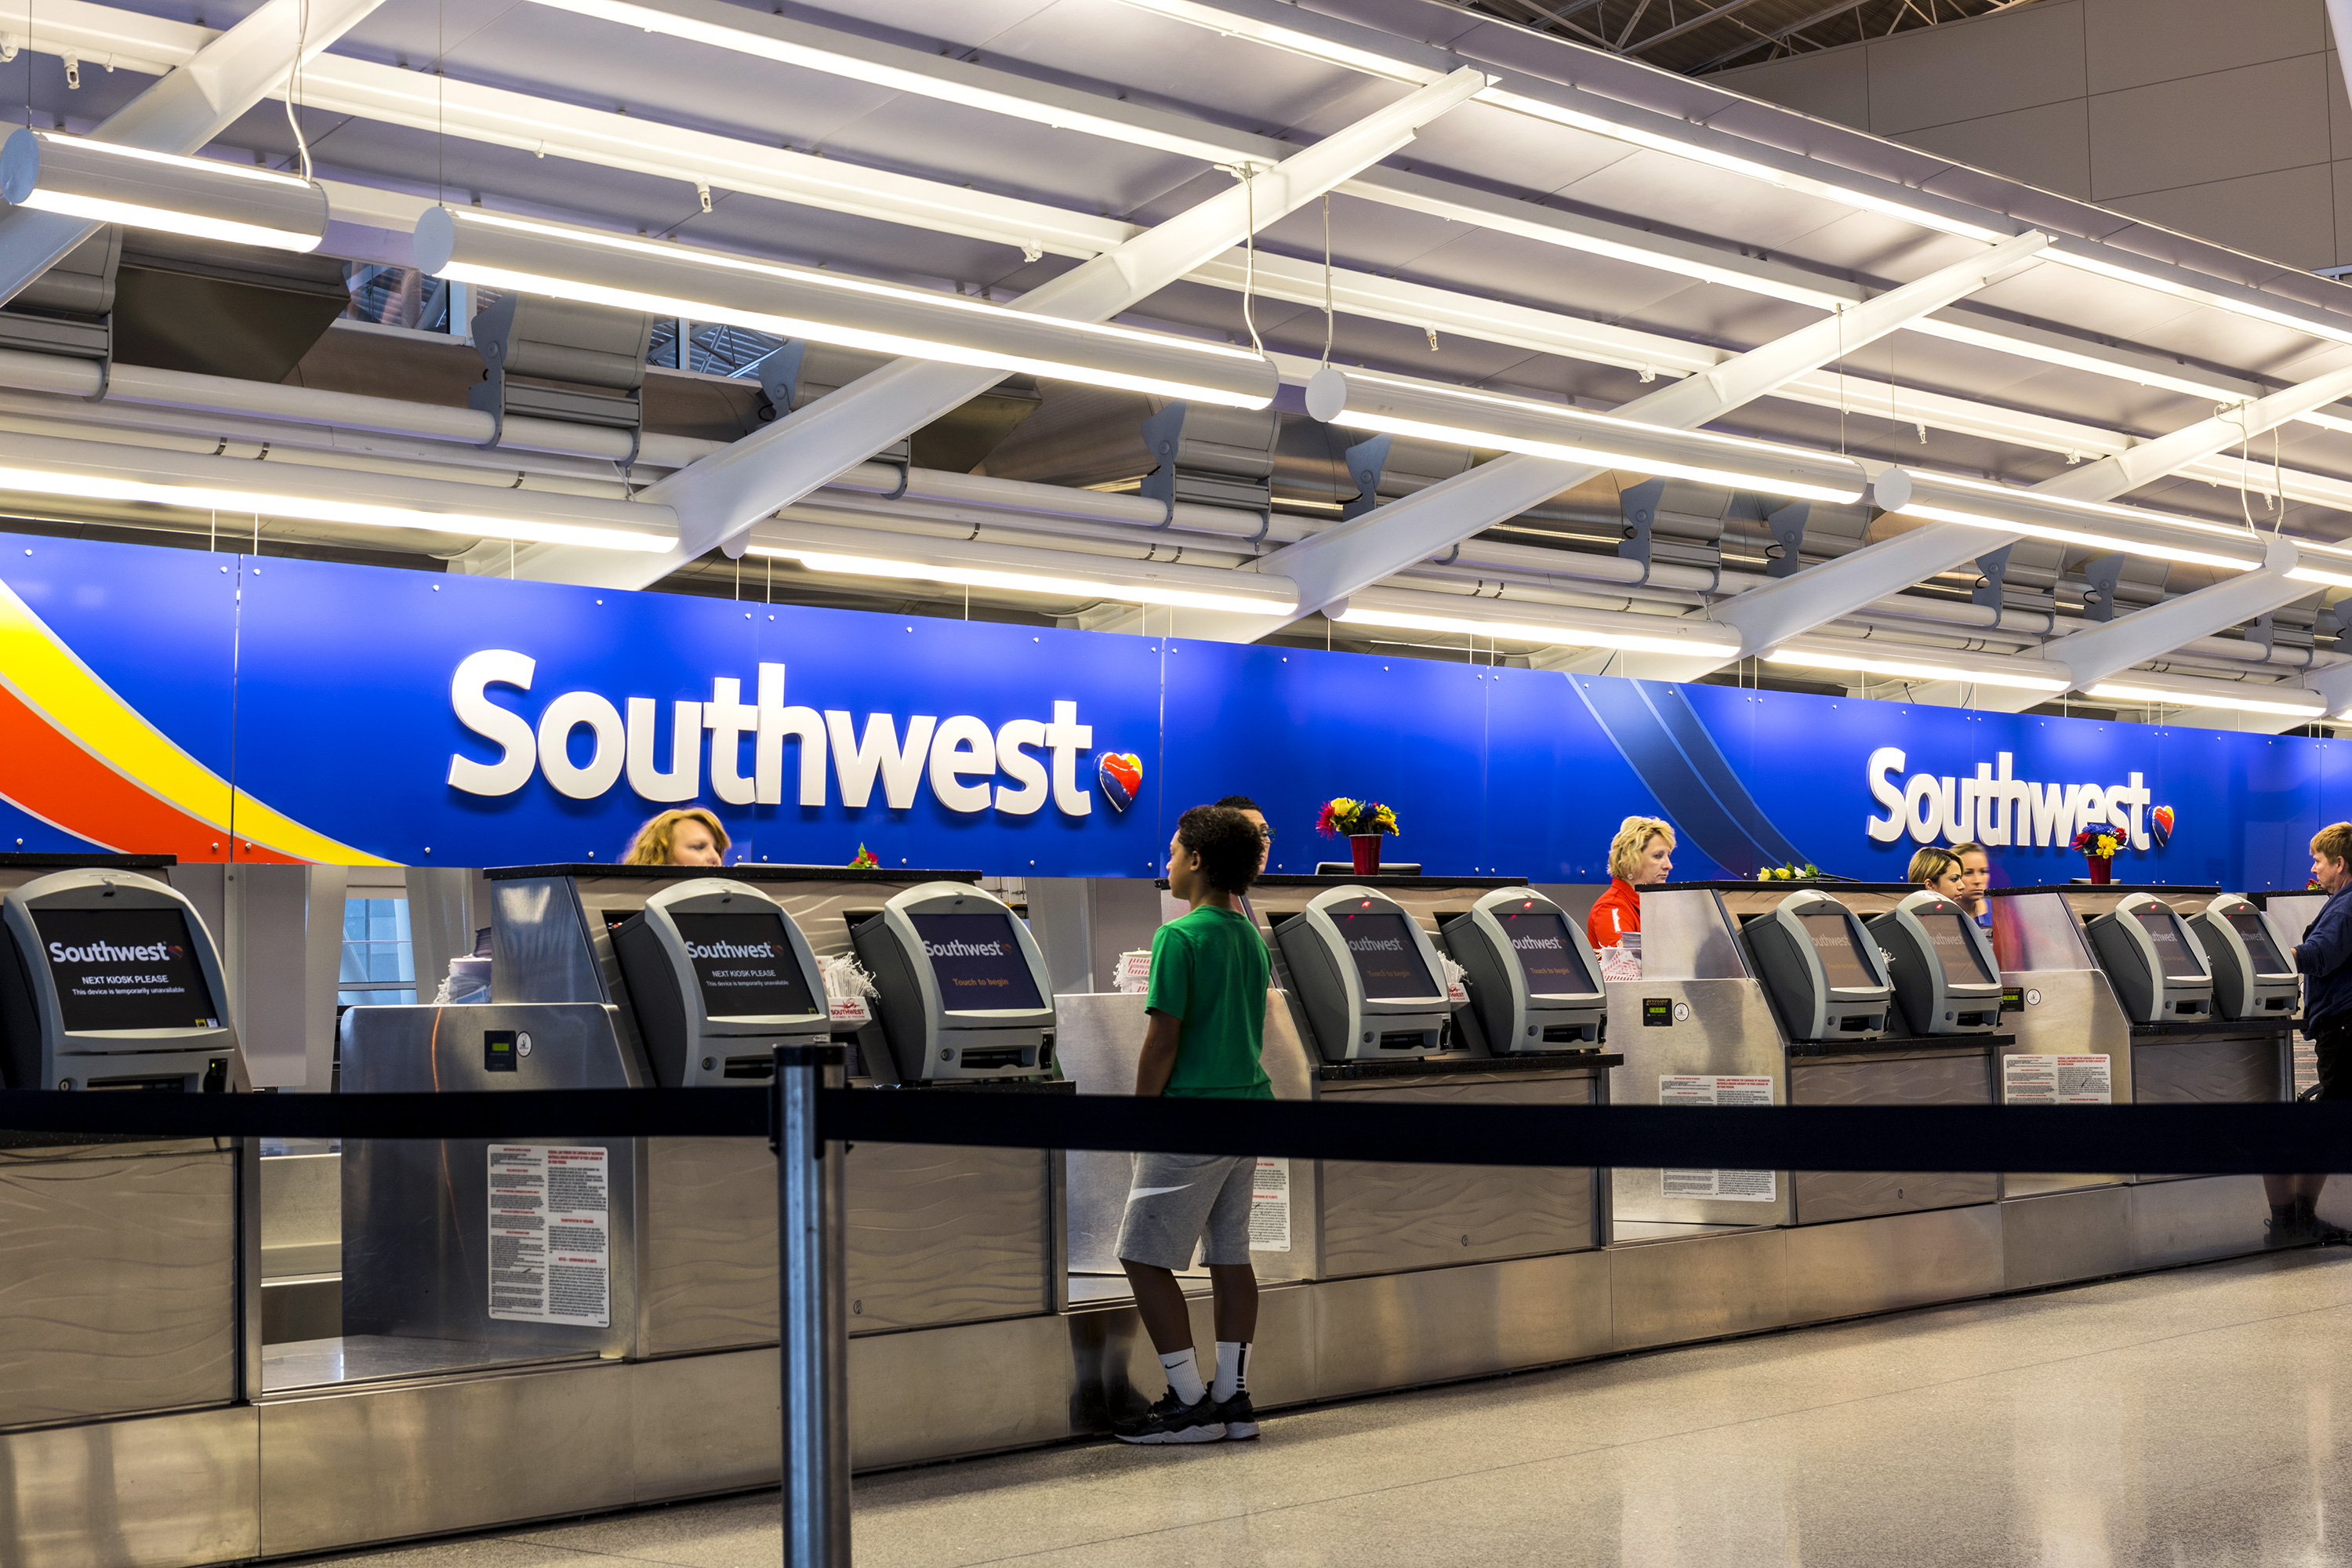 retraso vuelos aerolíneas estados unidos información Indianapolis - Circa July 2017: Southwest Airlines Check In desk preparing passengers for departure. Southwest is the largest low-cost carrier in the world IV - Image